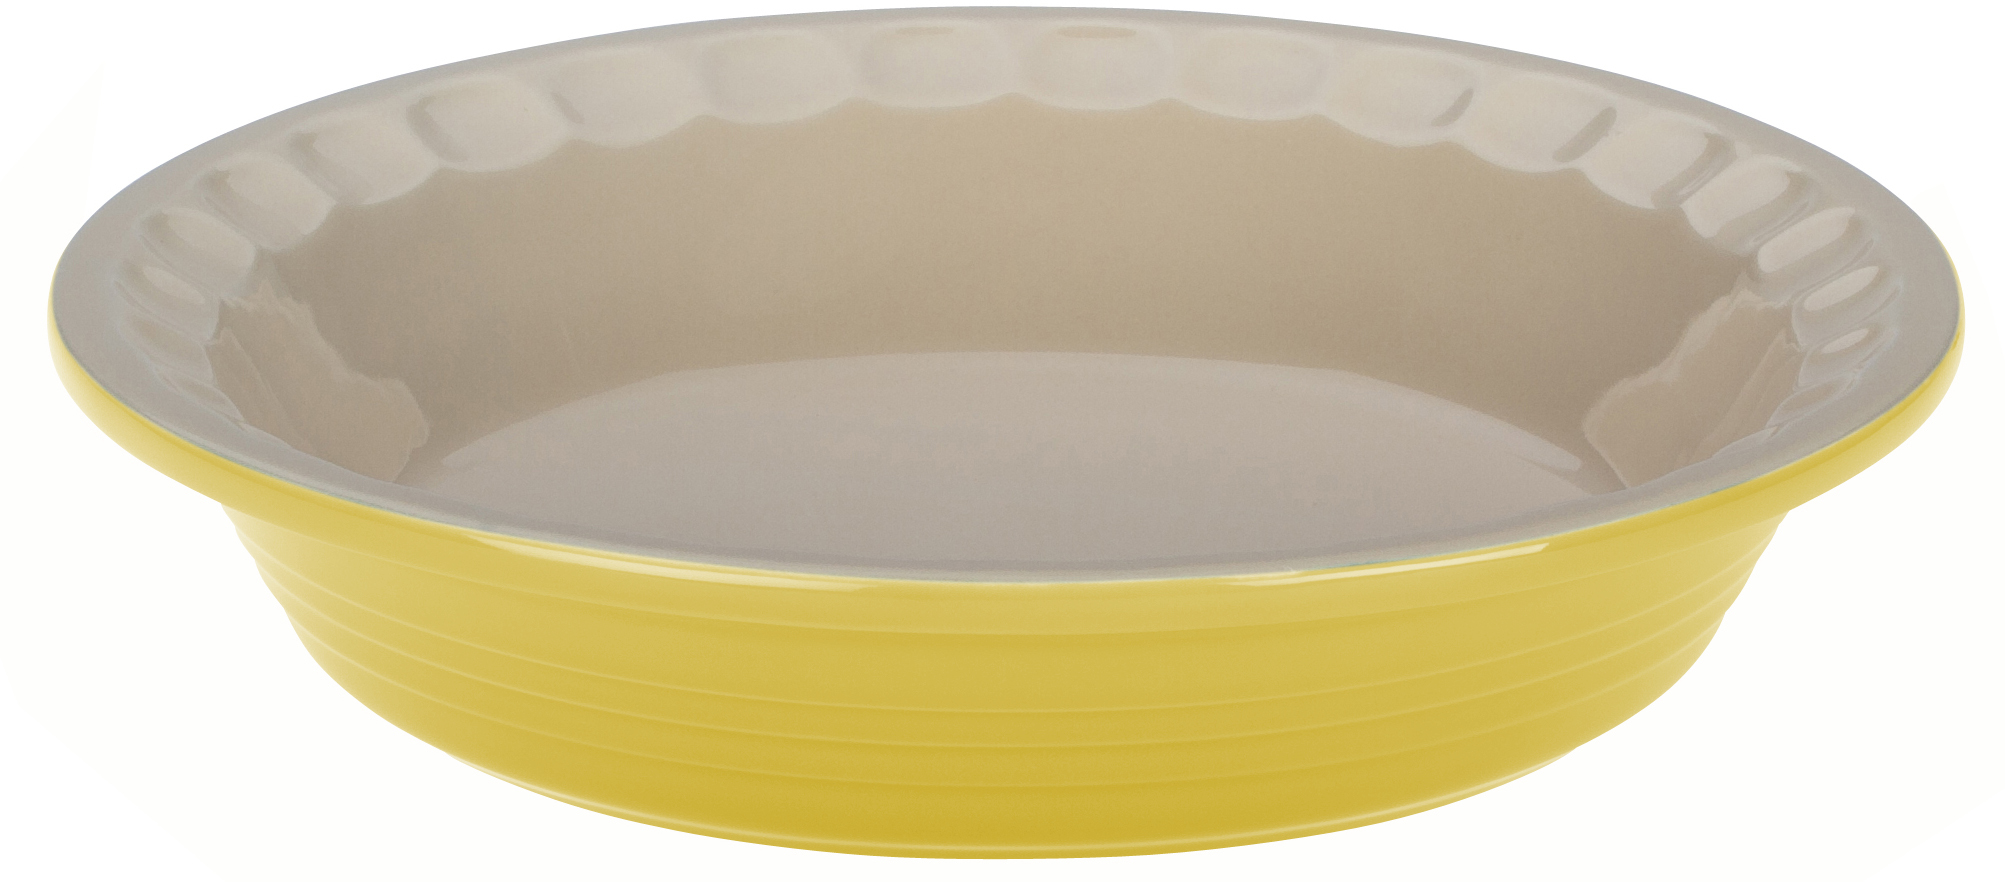 Le Creuset Heritage Soleil Yellow Stoneware Pie Pan, 5 Inch